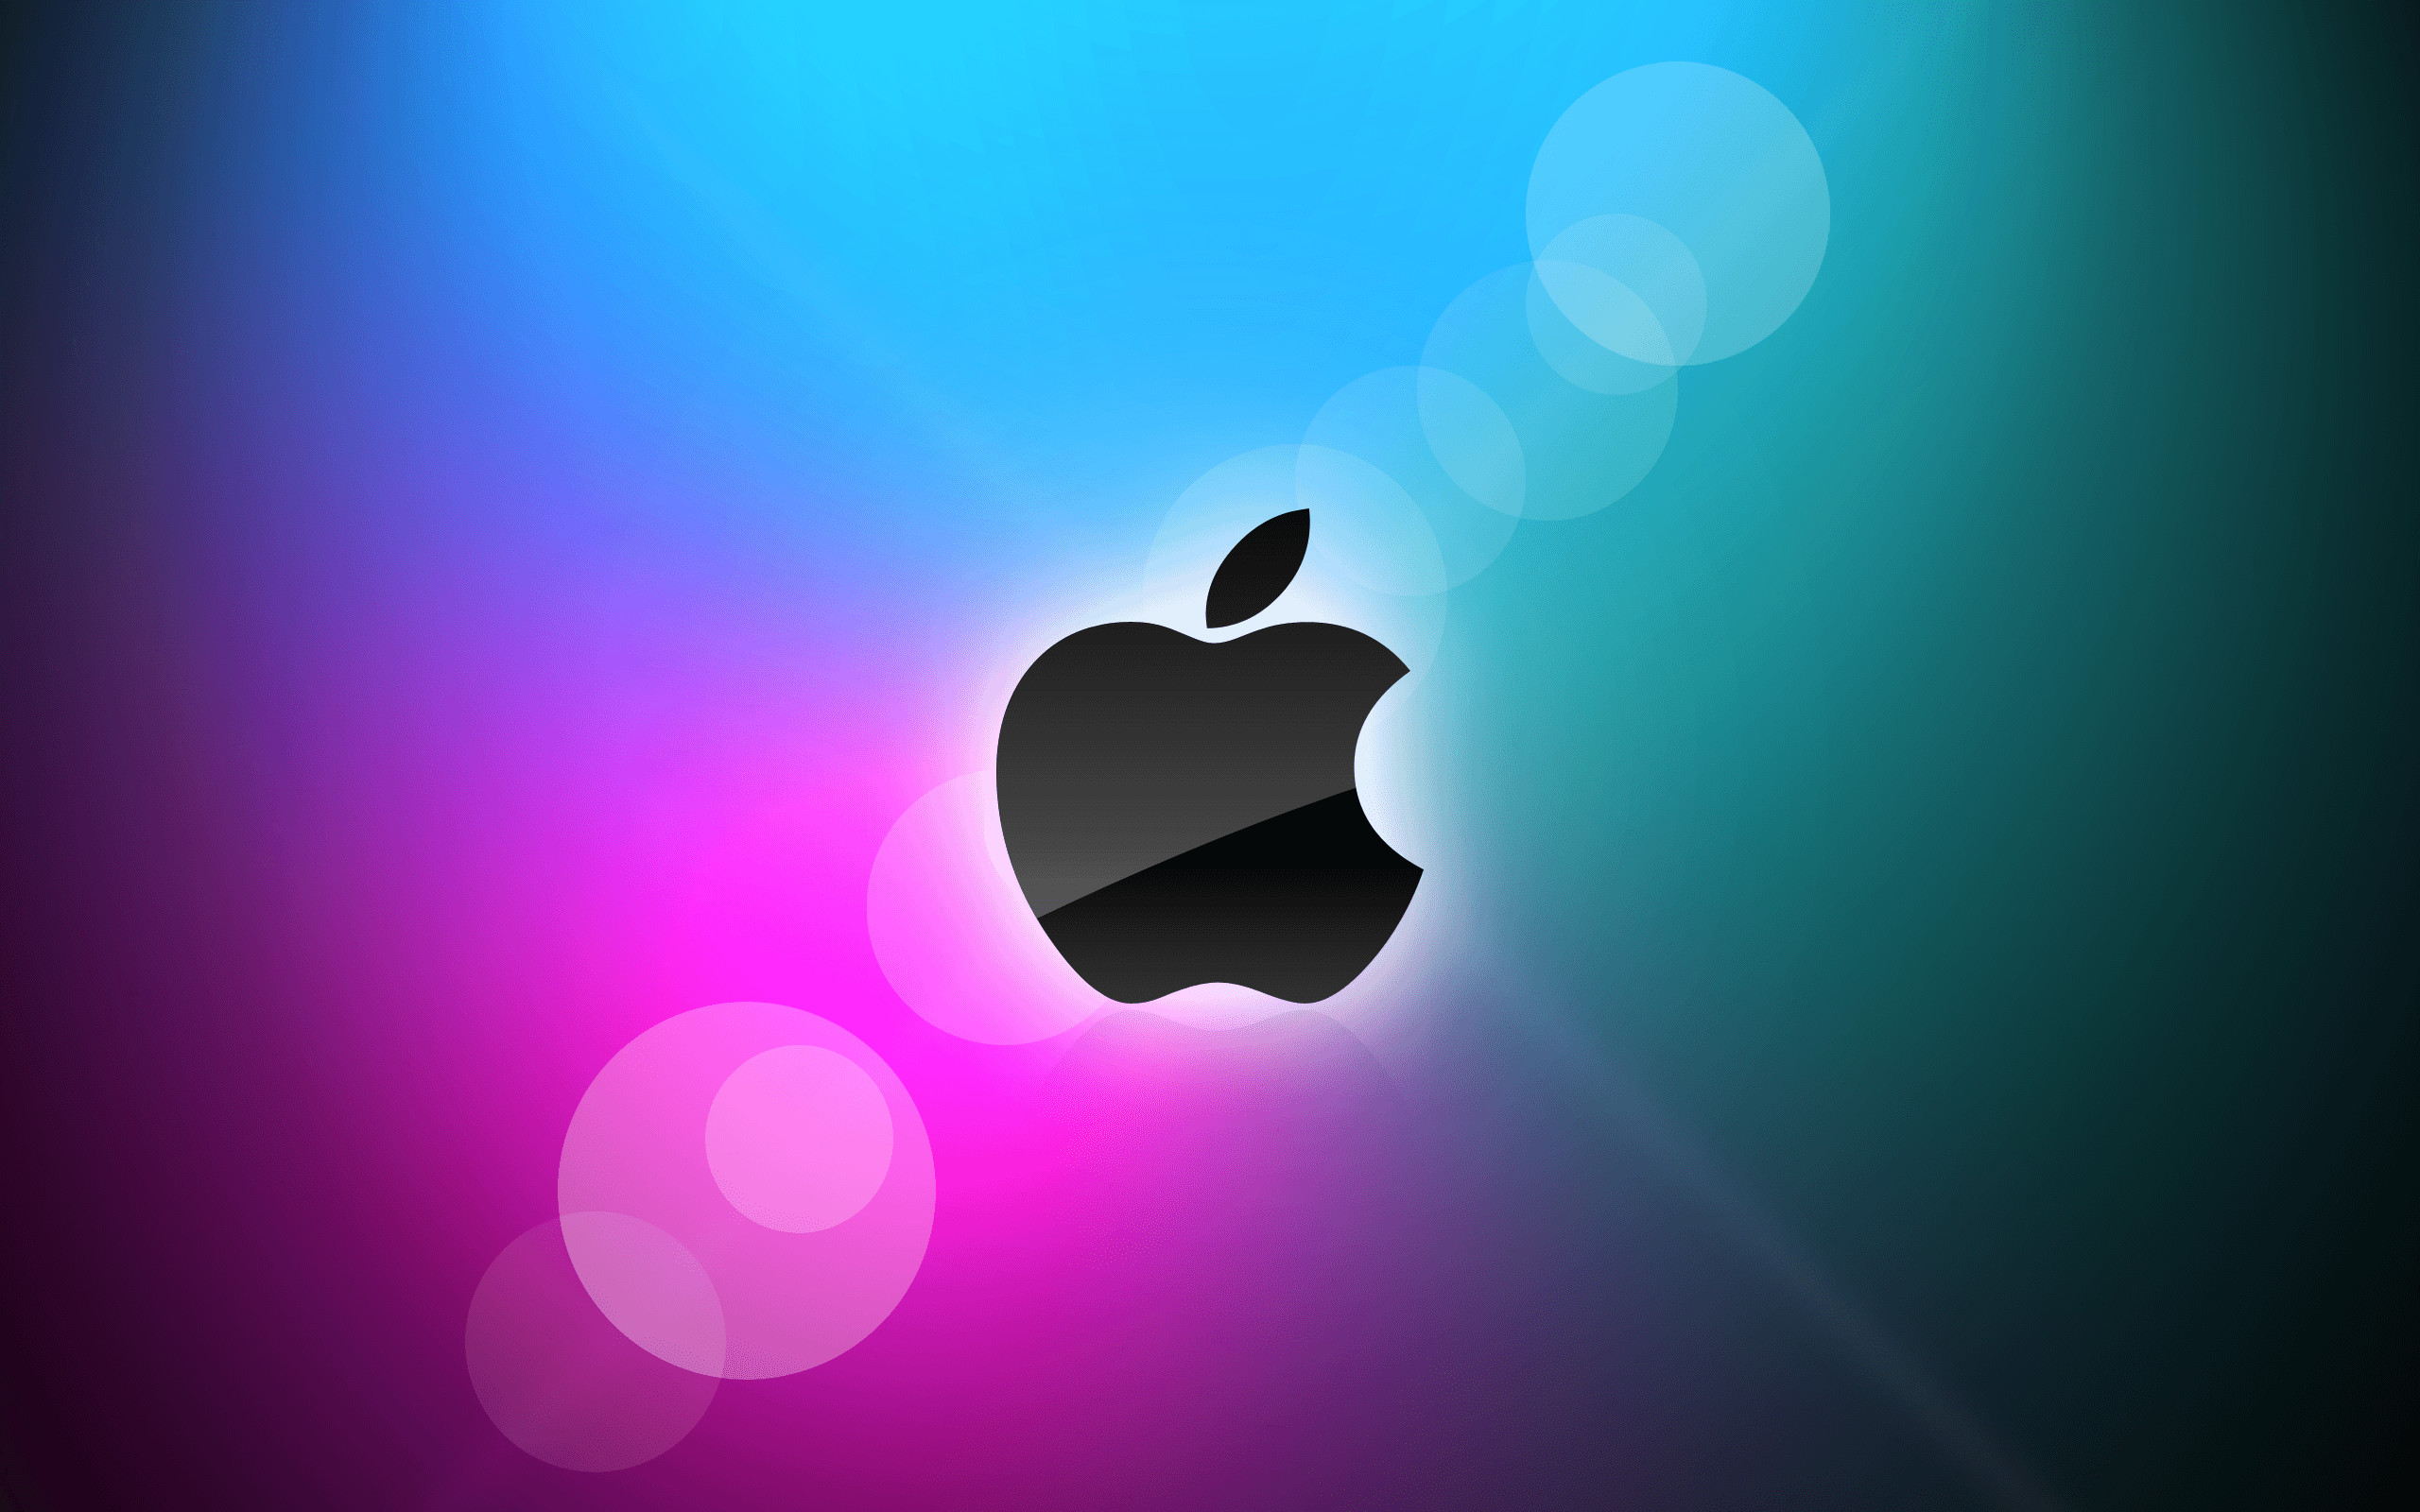 """Res: 2560x1600, 1562x955 Hd Apple Wallpapers 